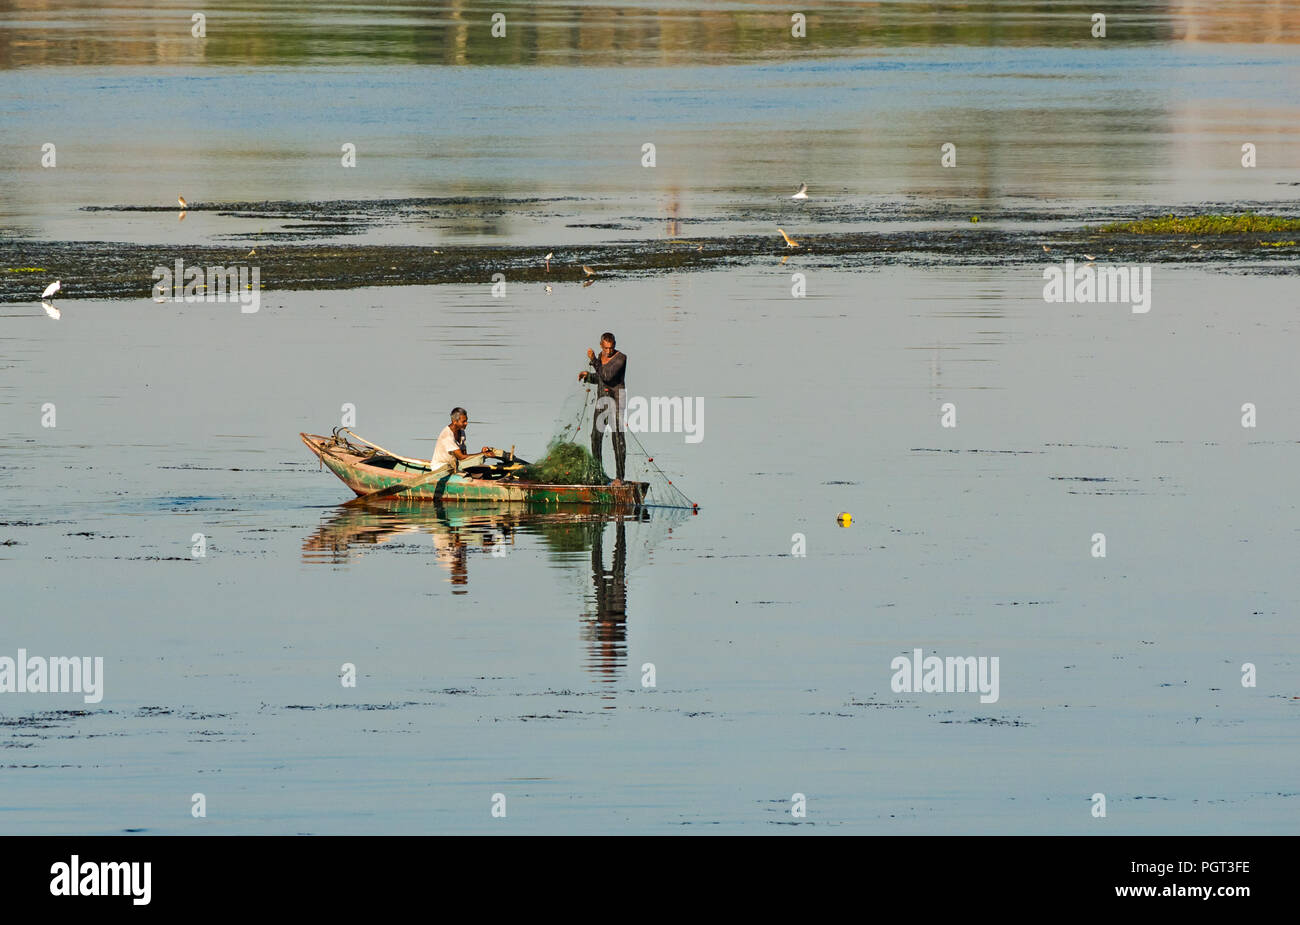 Egyptian local men in old rowing boat fishing with net in early morning light, with water reflections, Nile River, Egypt, Africa - Stock Image